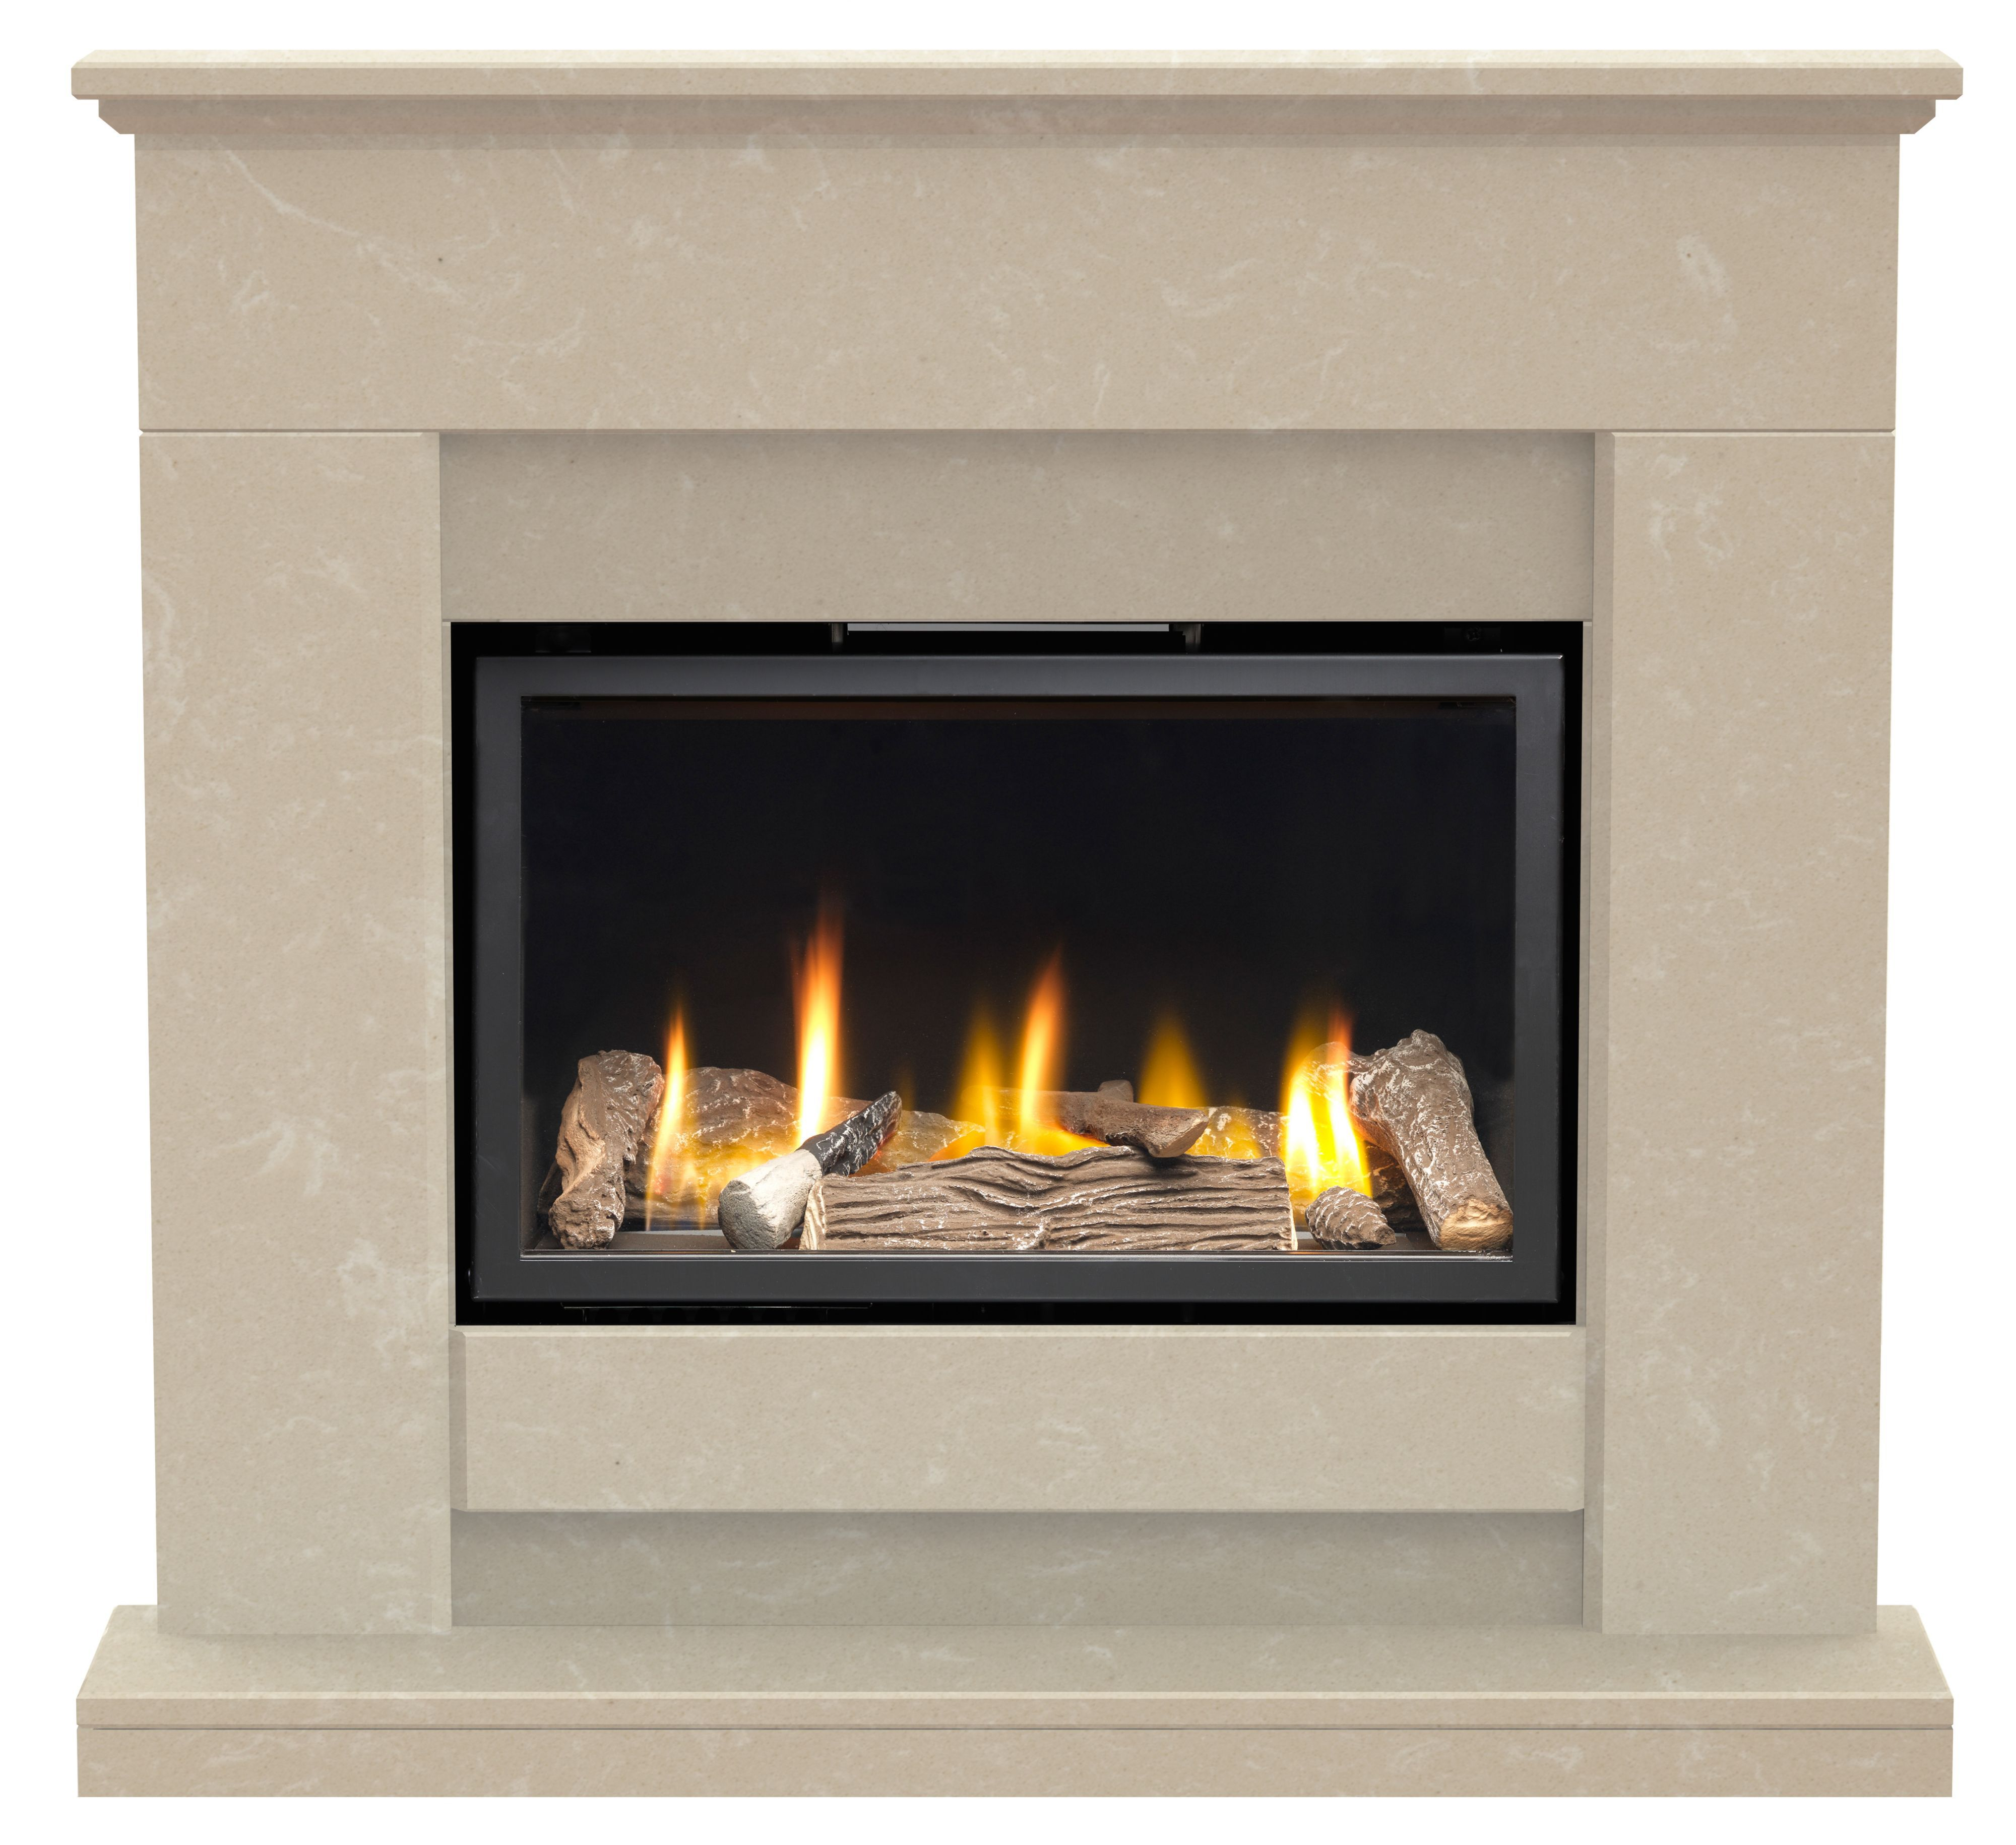 arched glass screen kozy products chaska great fireplace heat mission american in a hearth